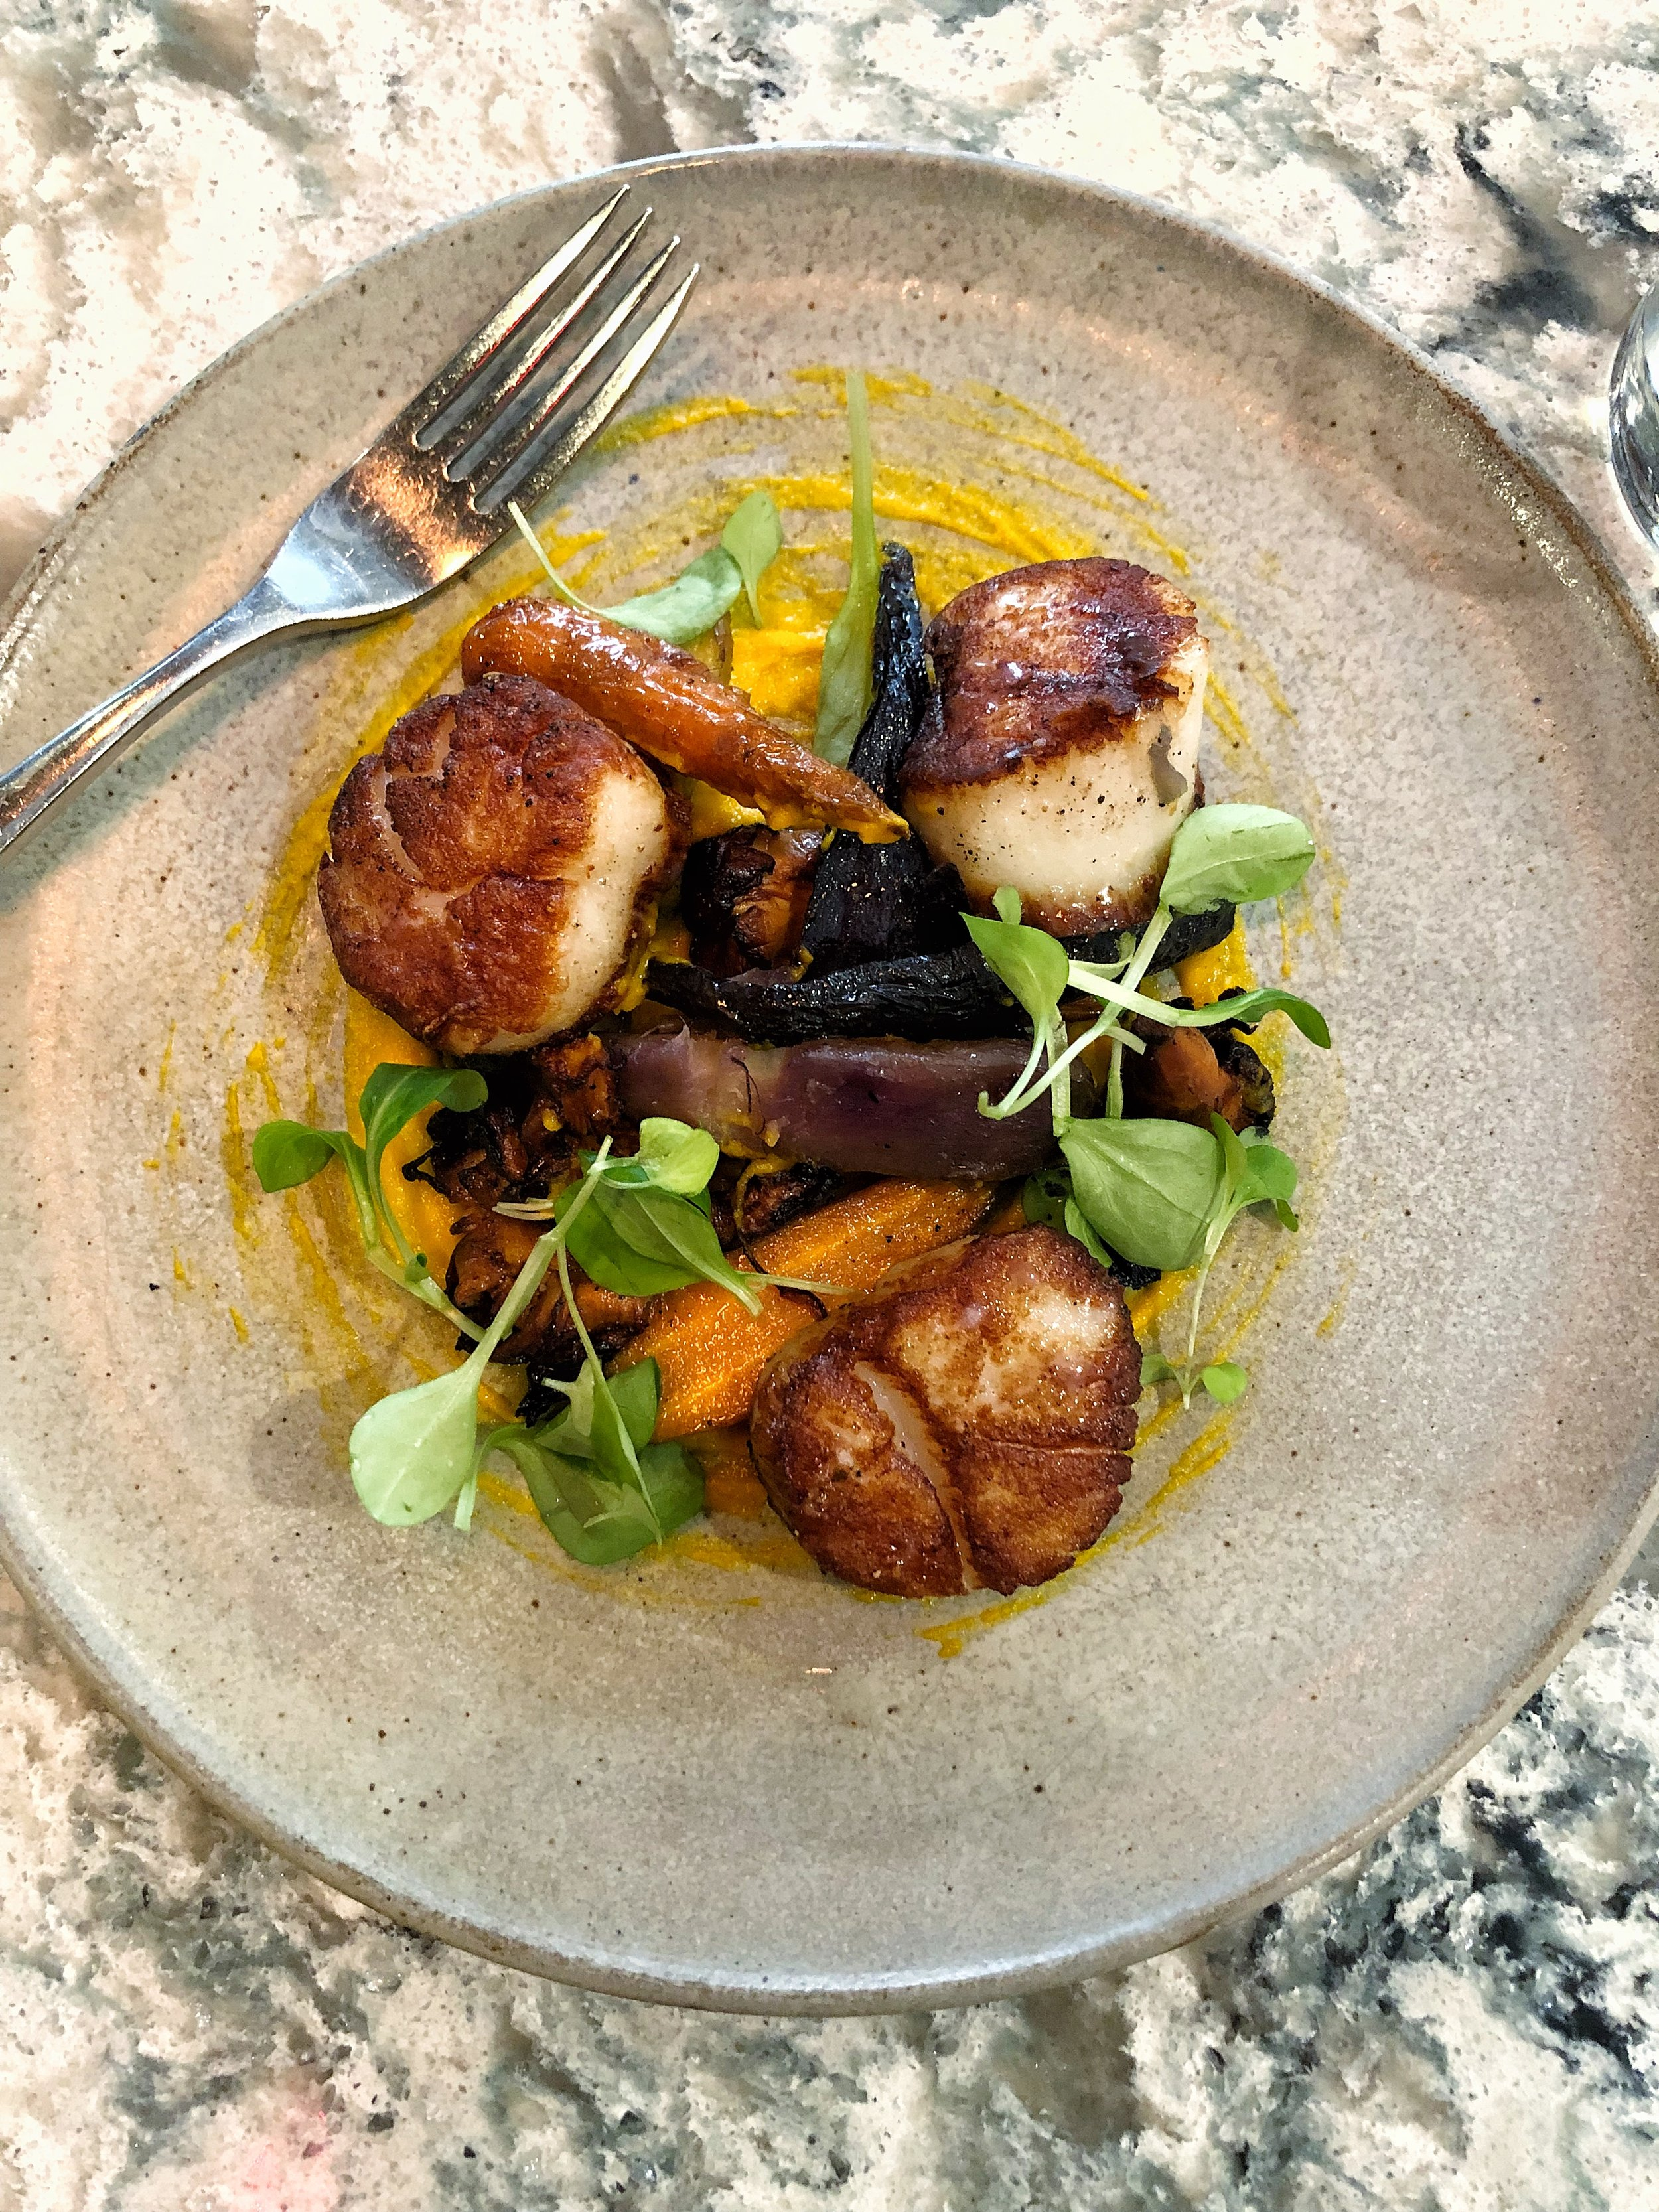 Seared scallops with carrot cream, roasted carrots, and chanterelles